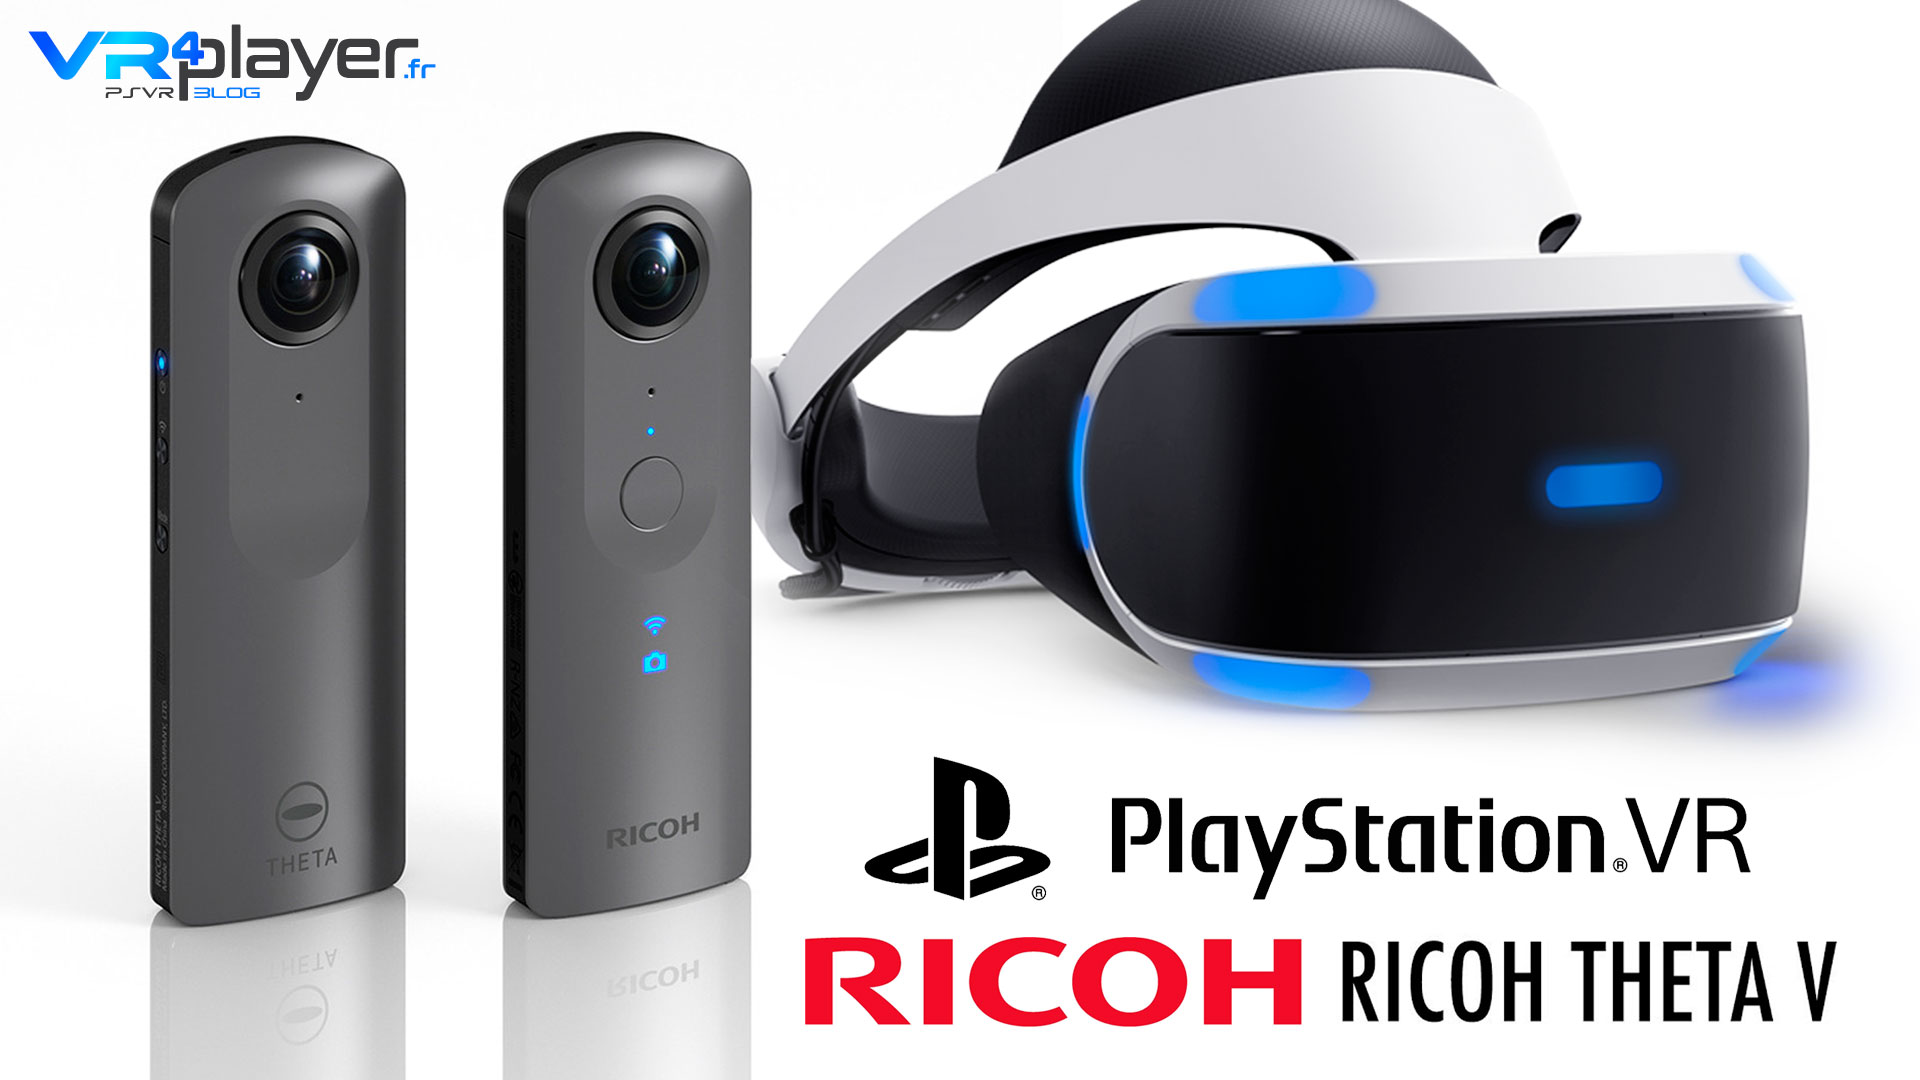 Ricoh Theta V PlayStation VR PSVR VR4player